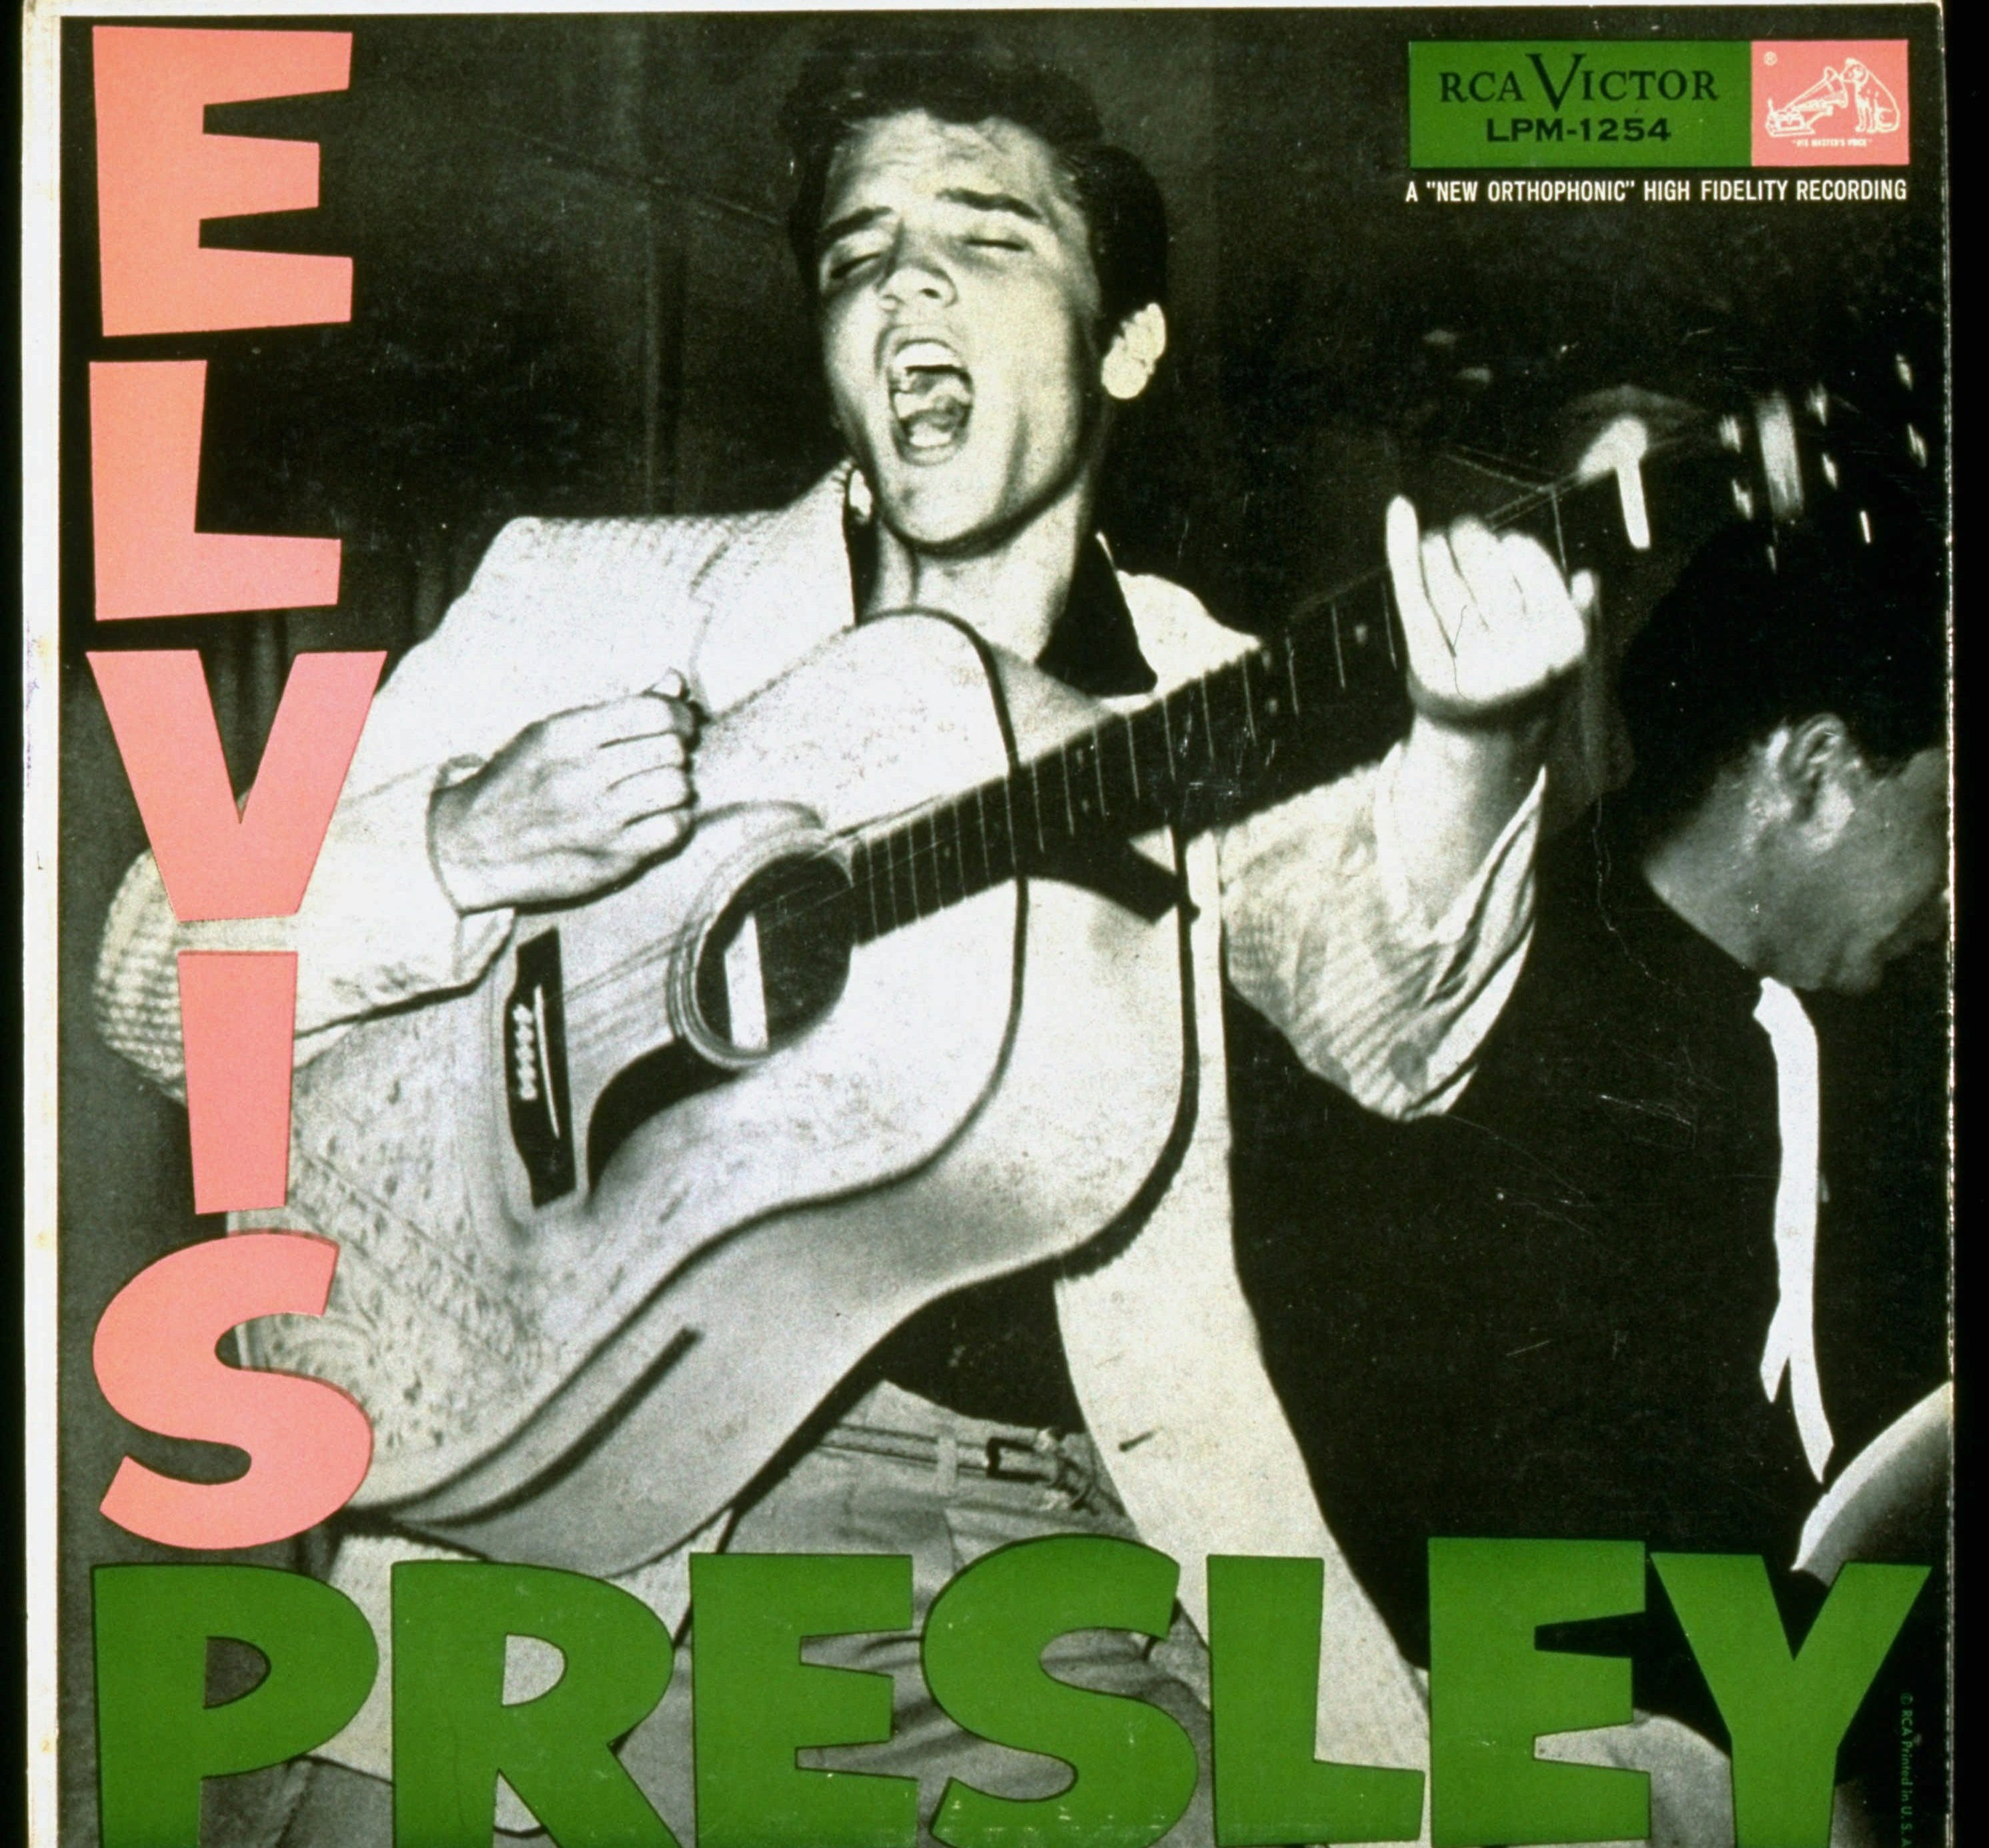 126 | Charted albums. That total includes 10 No. 1s on the 'Billboard' album chart. The first was 1956's 'Elvis Presley,' and the most recent was 2002's 'Elv1s: 30 #1 Hits.'